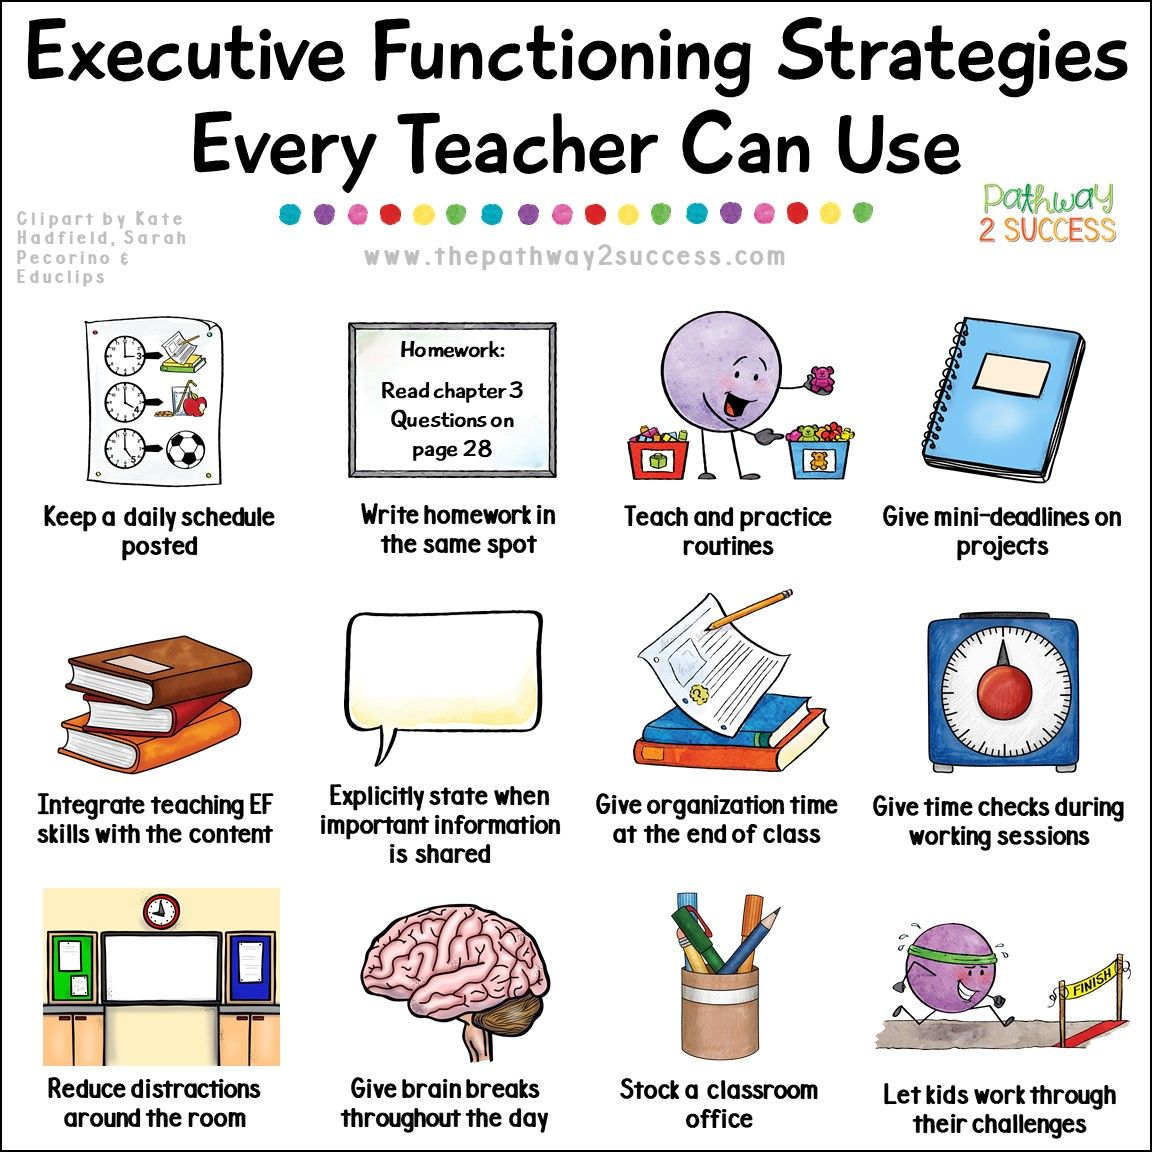 15 Executive Functioning Strategies Every Teacher Can Use